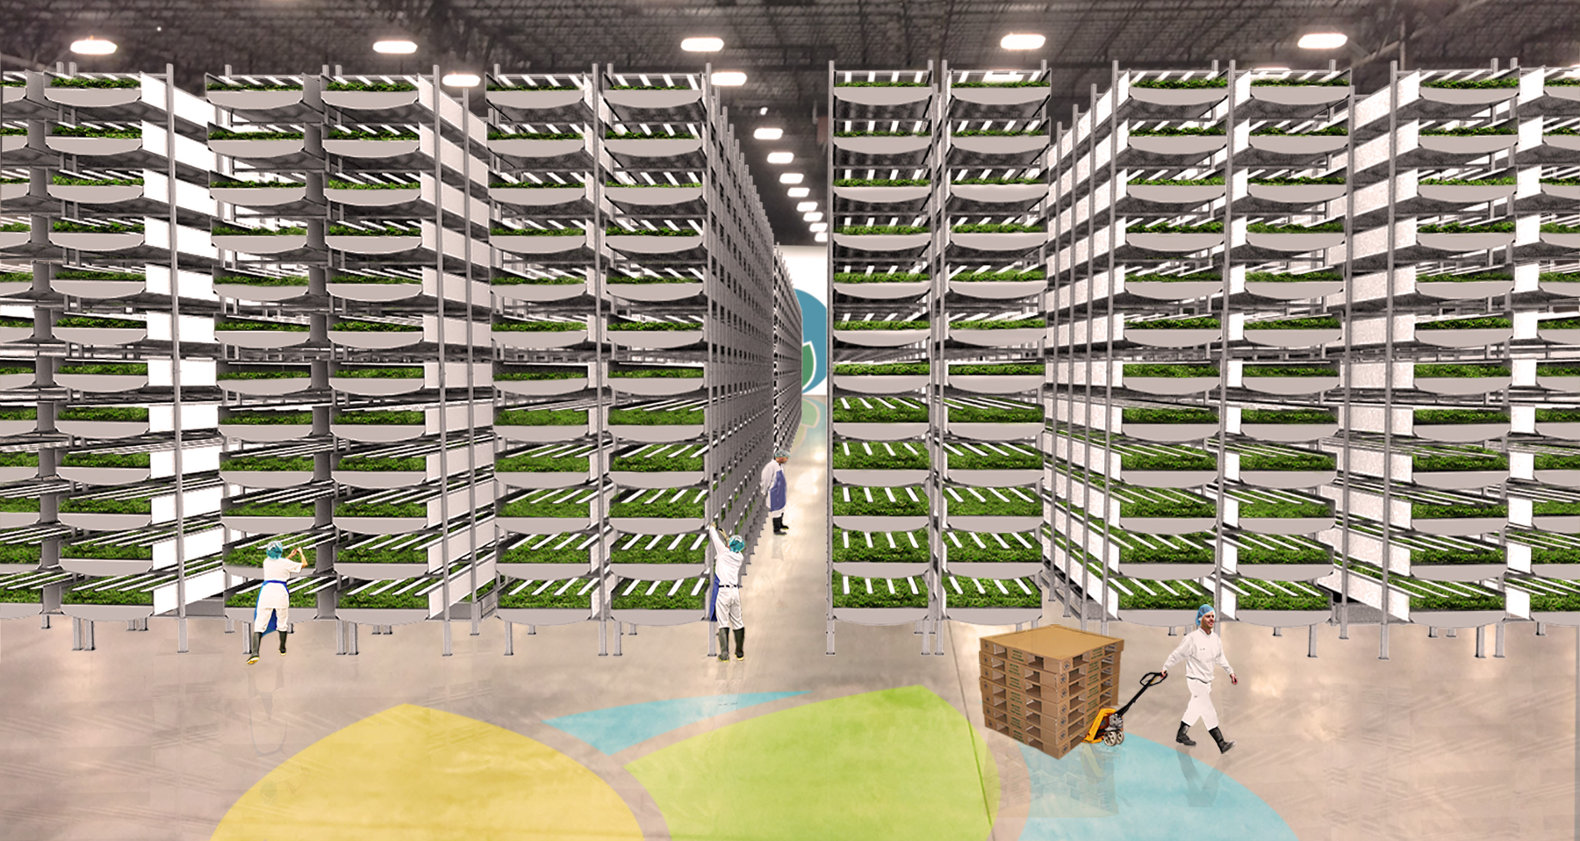 AeroFarms is building the world's largest indoor vertical farm just 45 mins from Manhattan